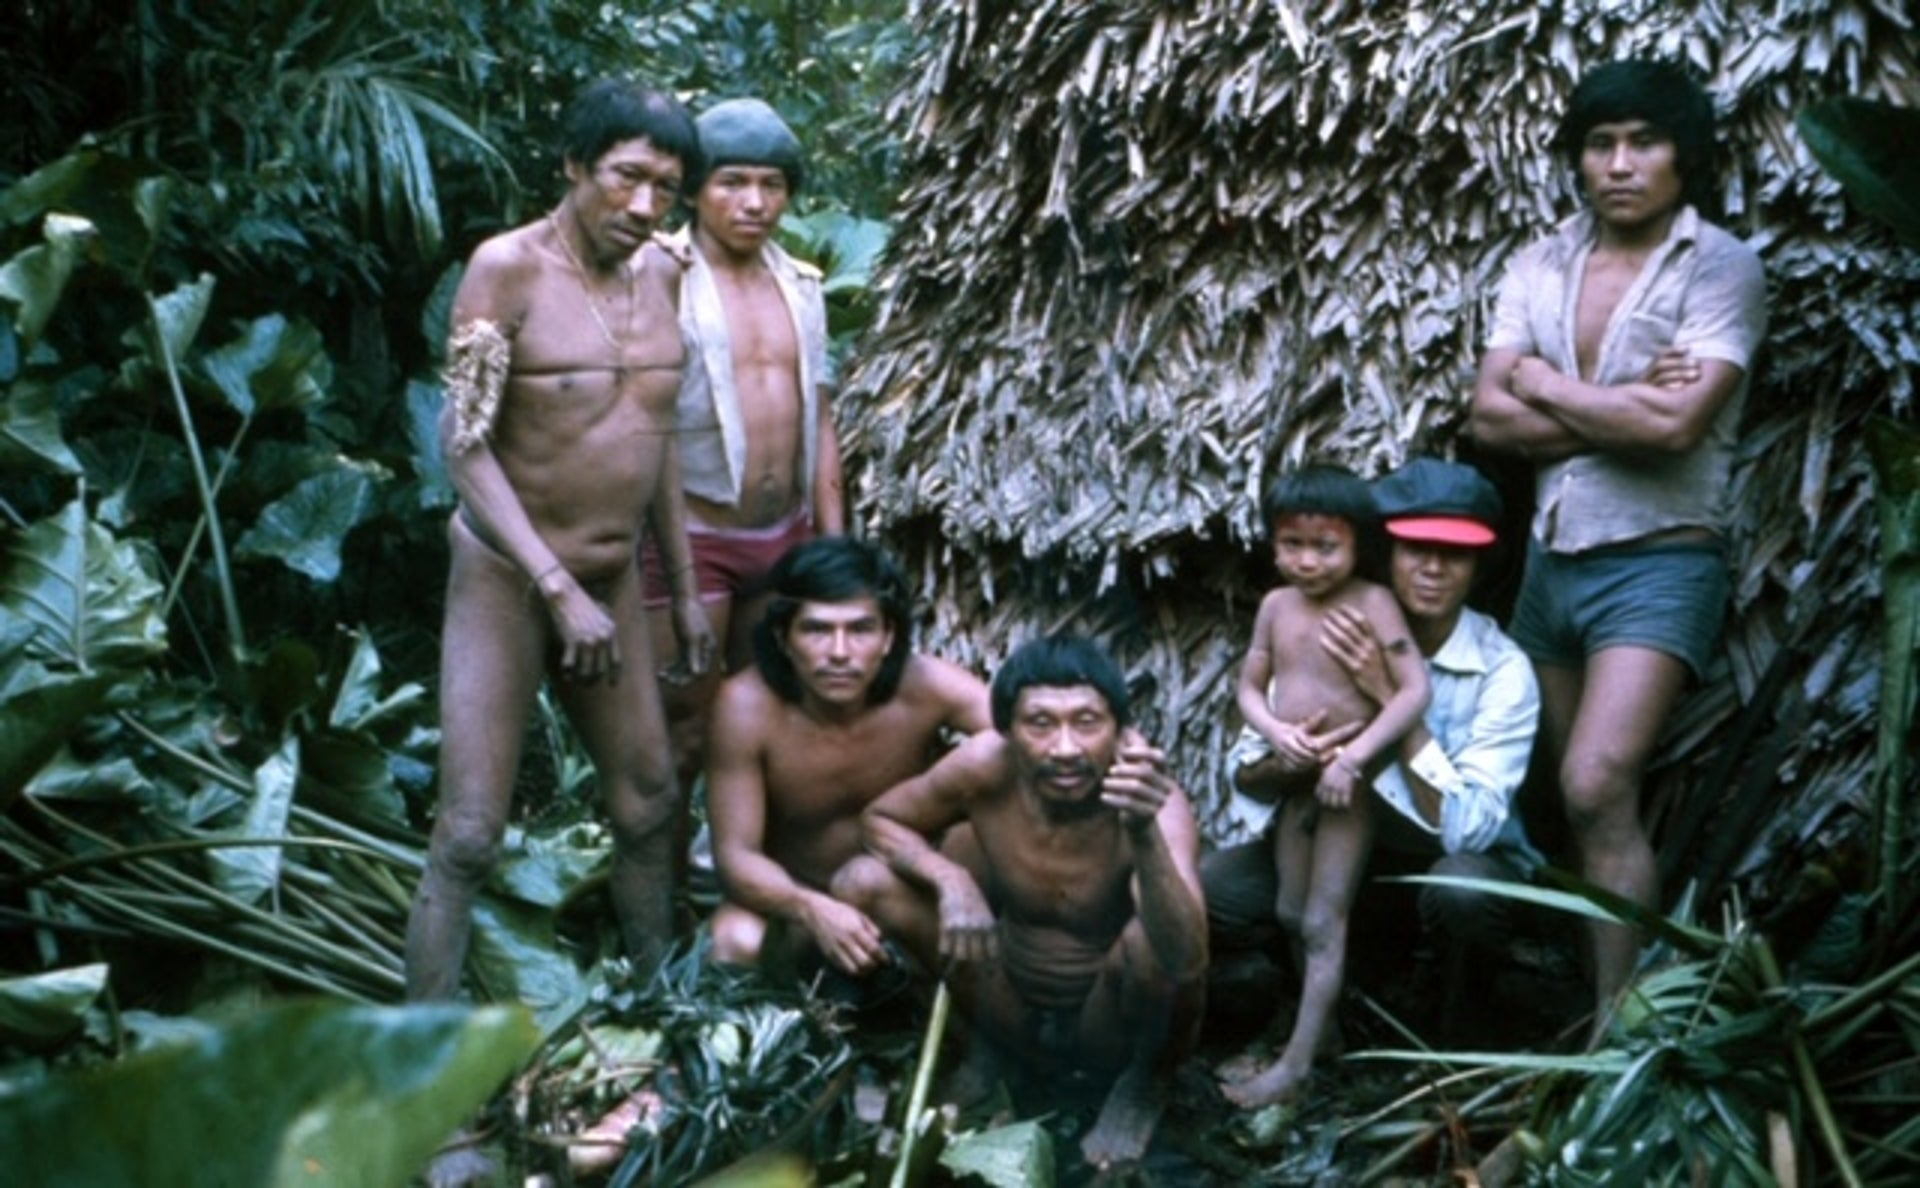 The first encounter with the Maia tribe.